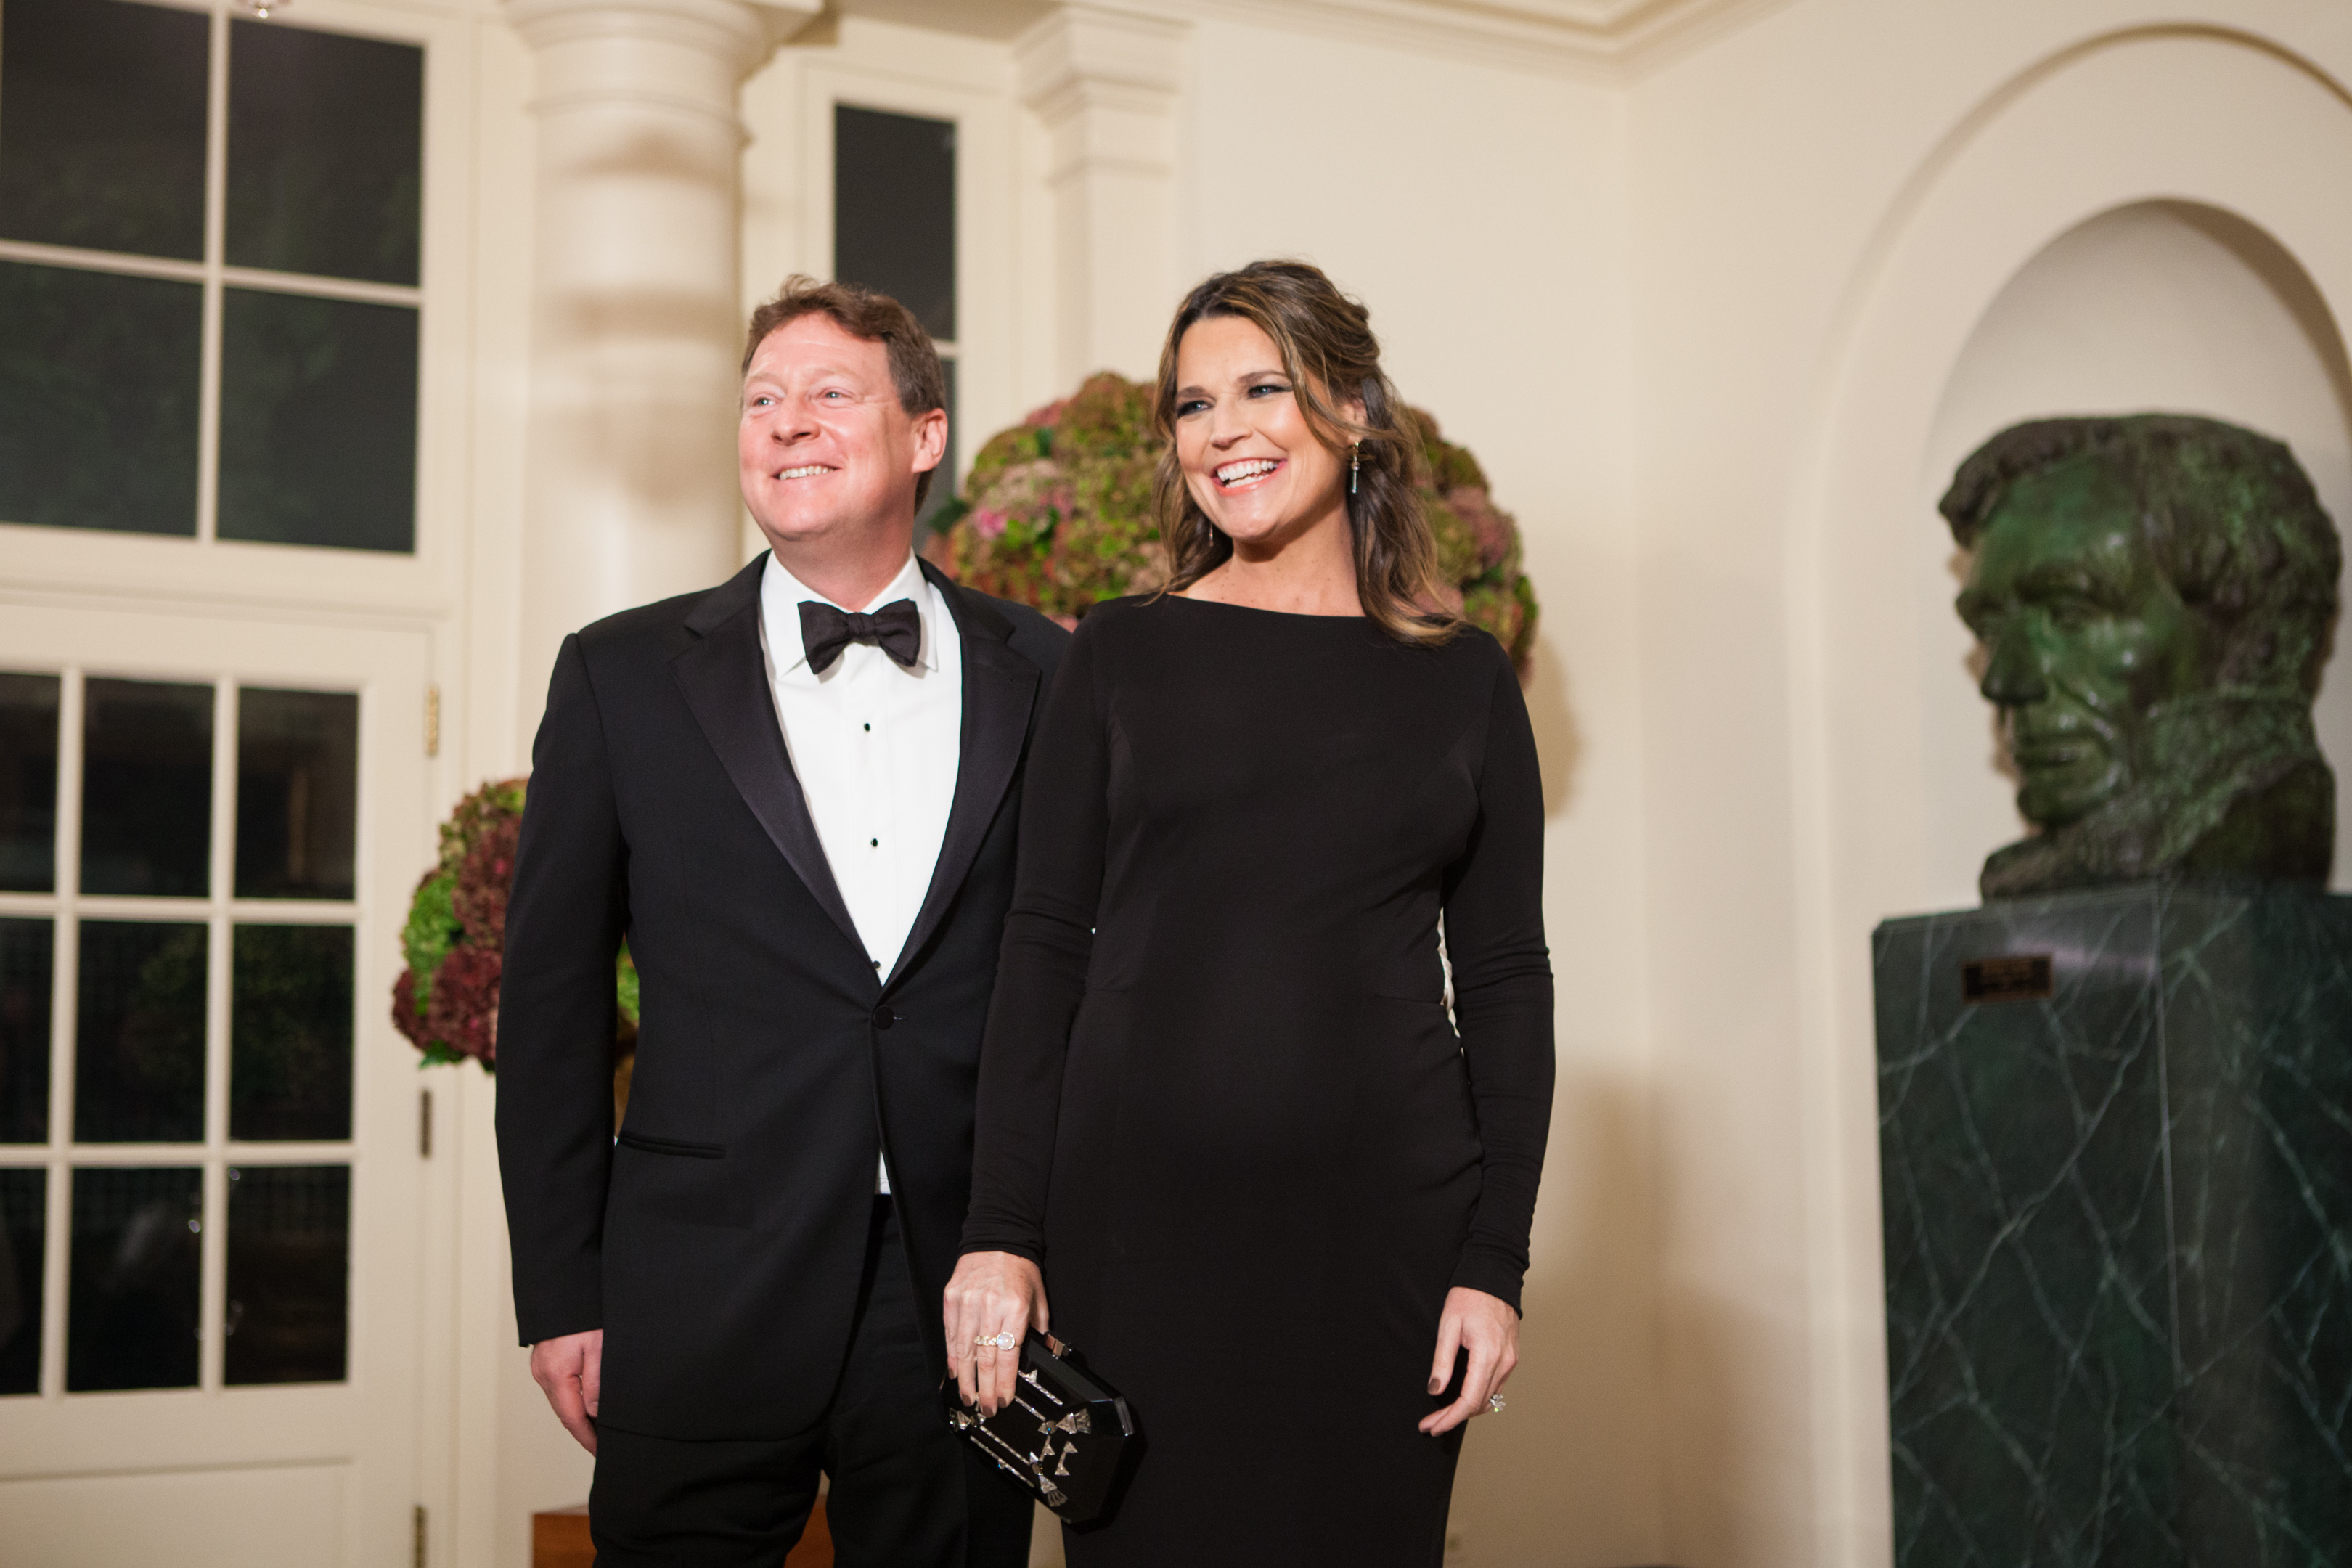 Savannah Guthrie Welcomes Her Fifth Anniversary With A Candid Wedding Photo